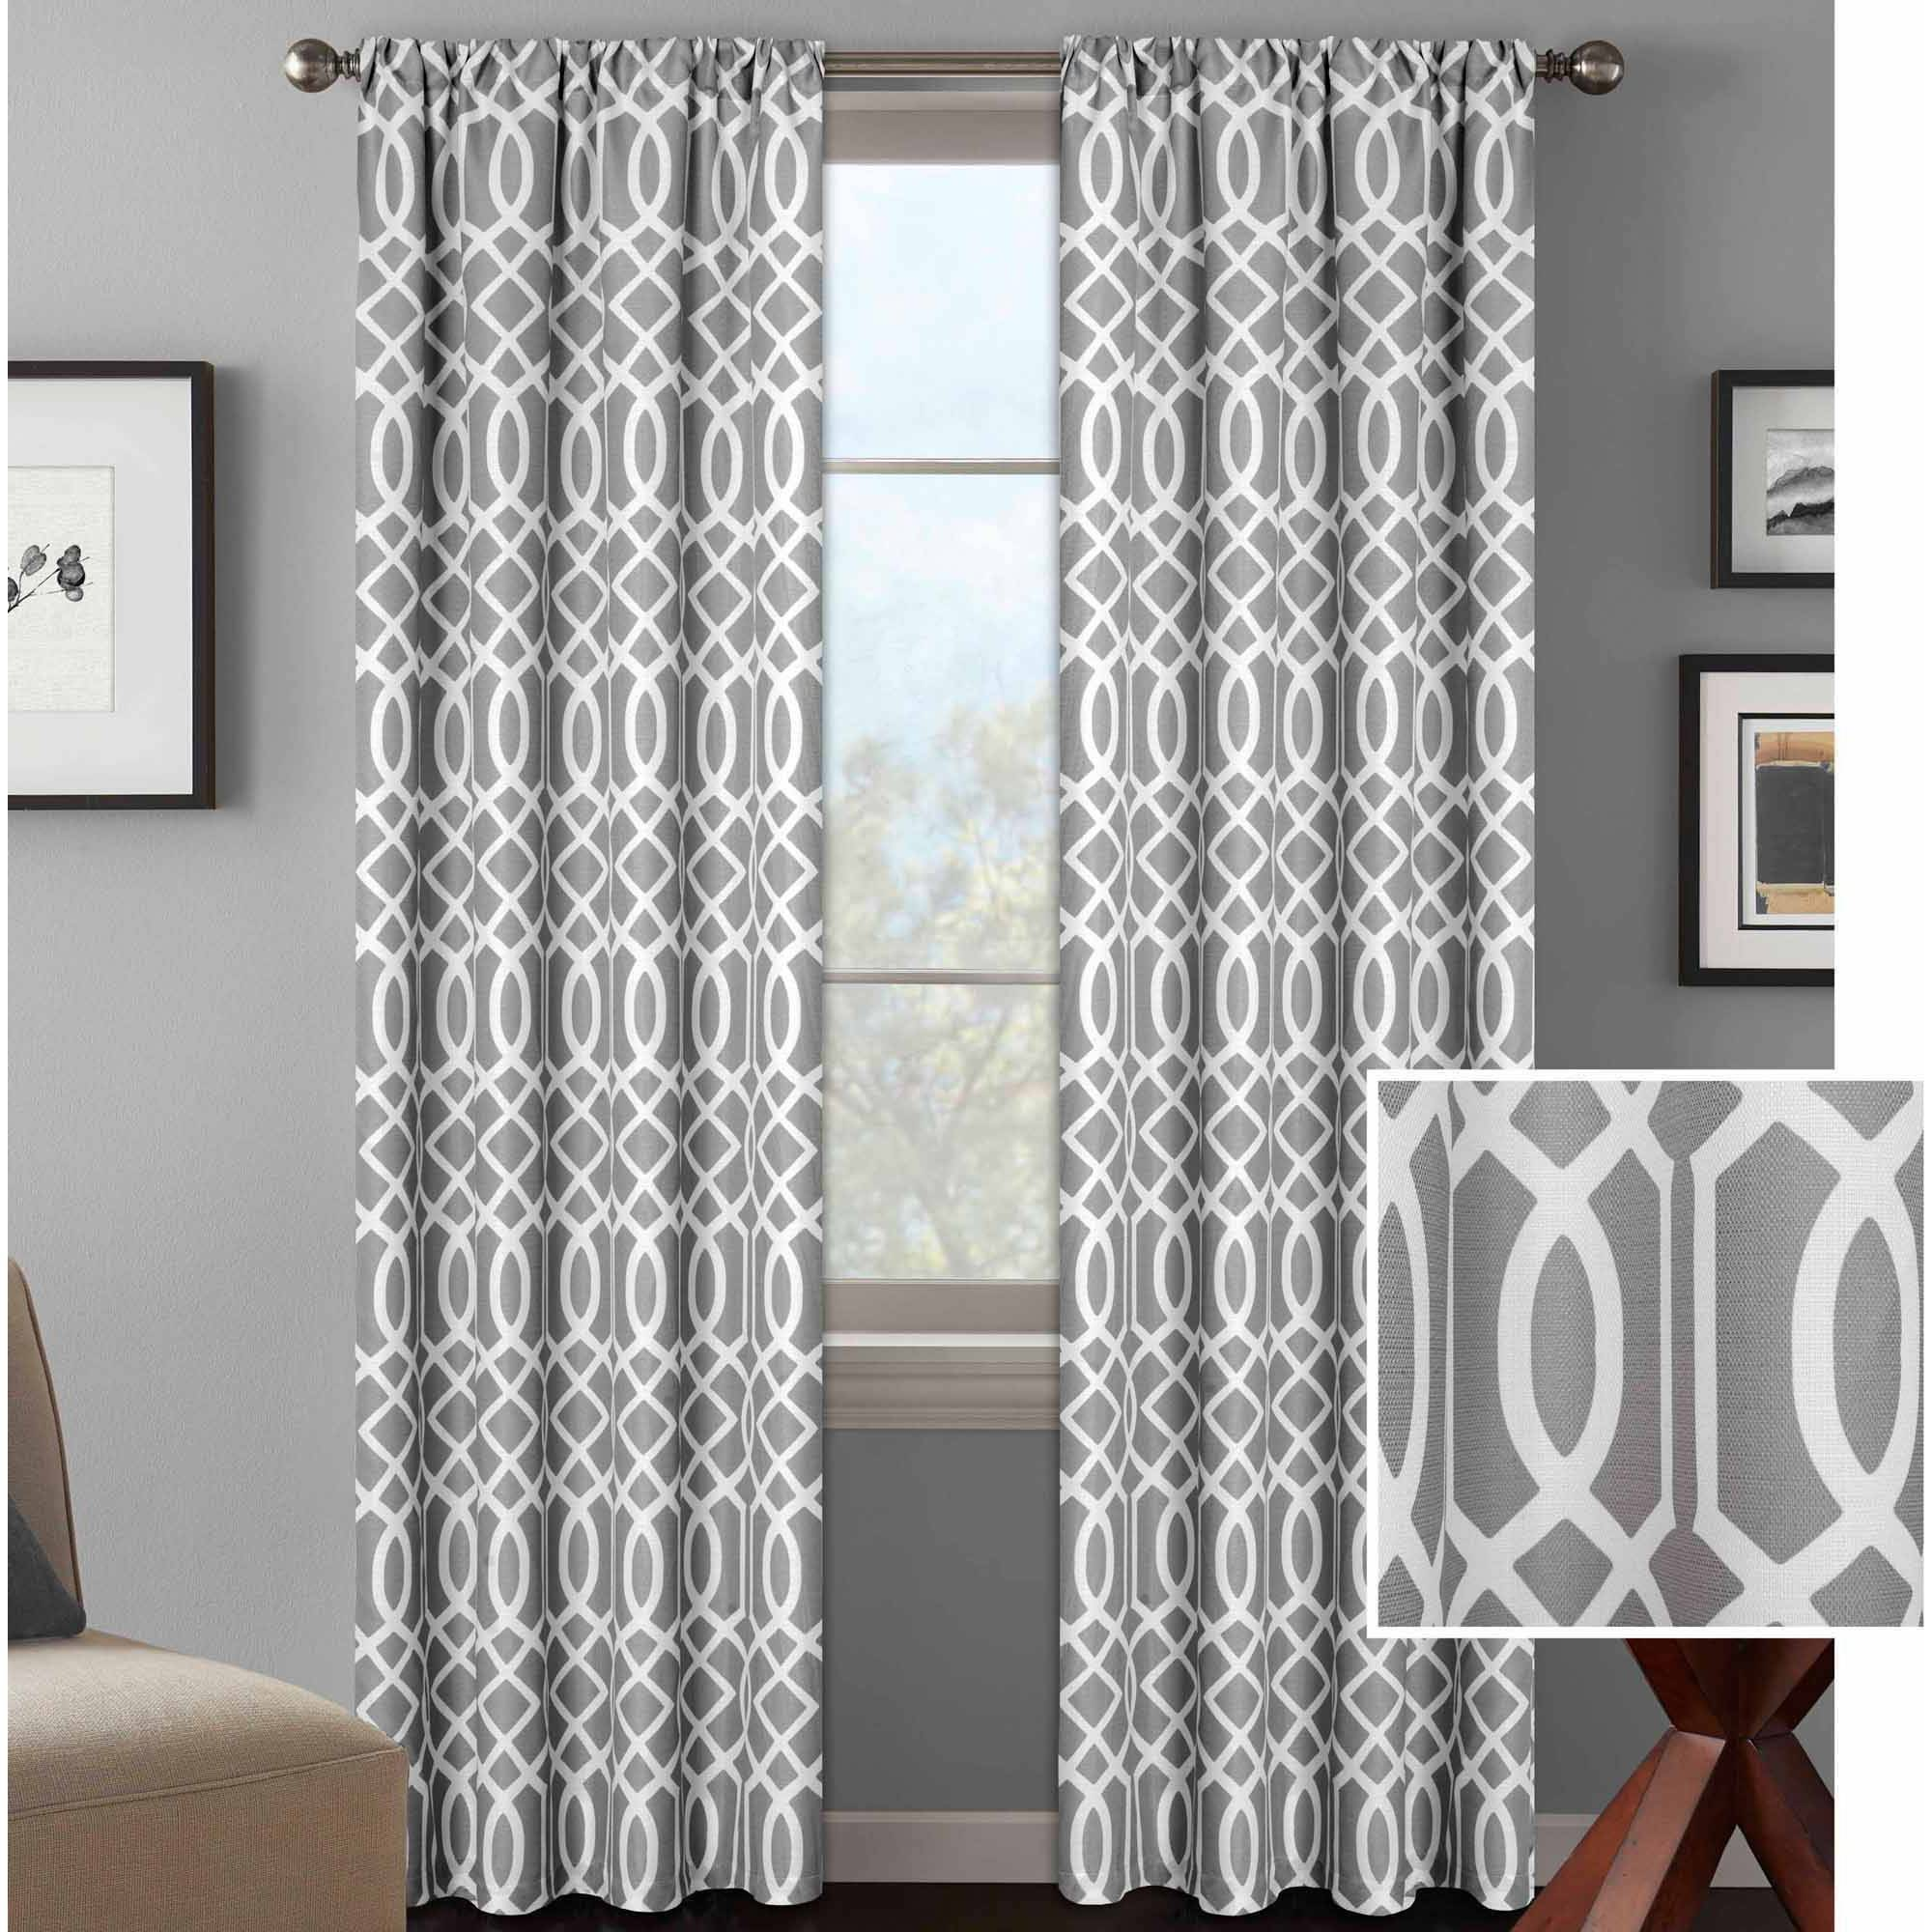 Walmart Curtains For Living Room Magnificent Better Homes And Gardens Ironwork Window Curtain  Walmart Inspiration